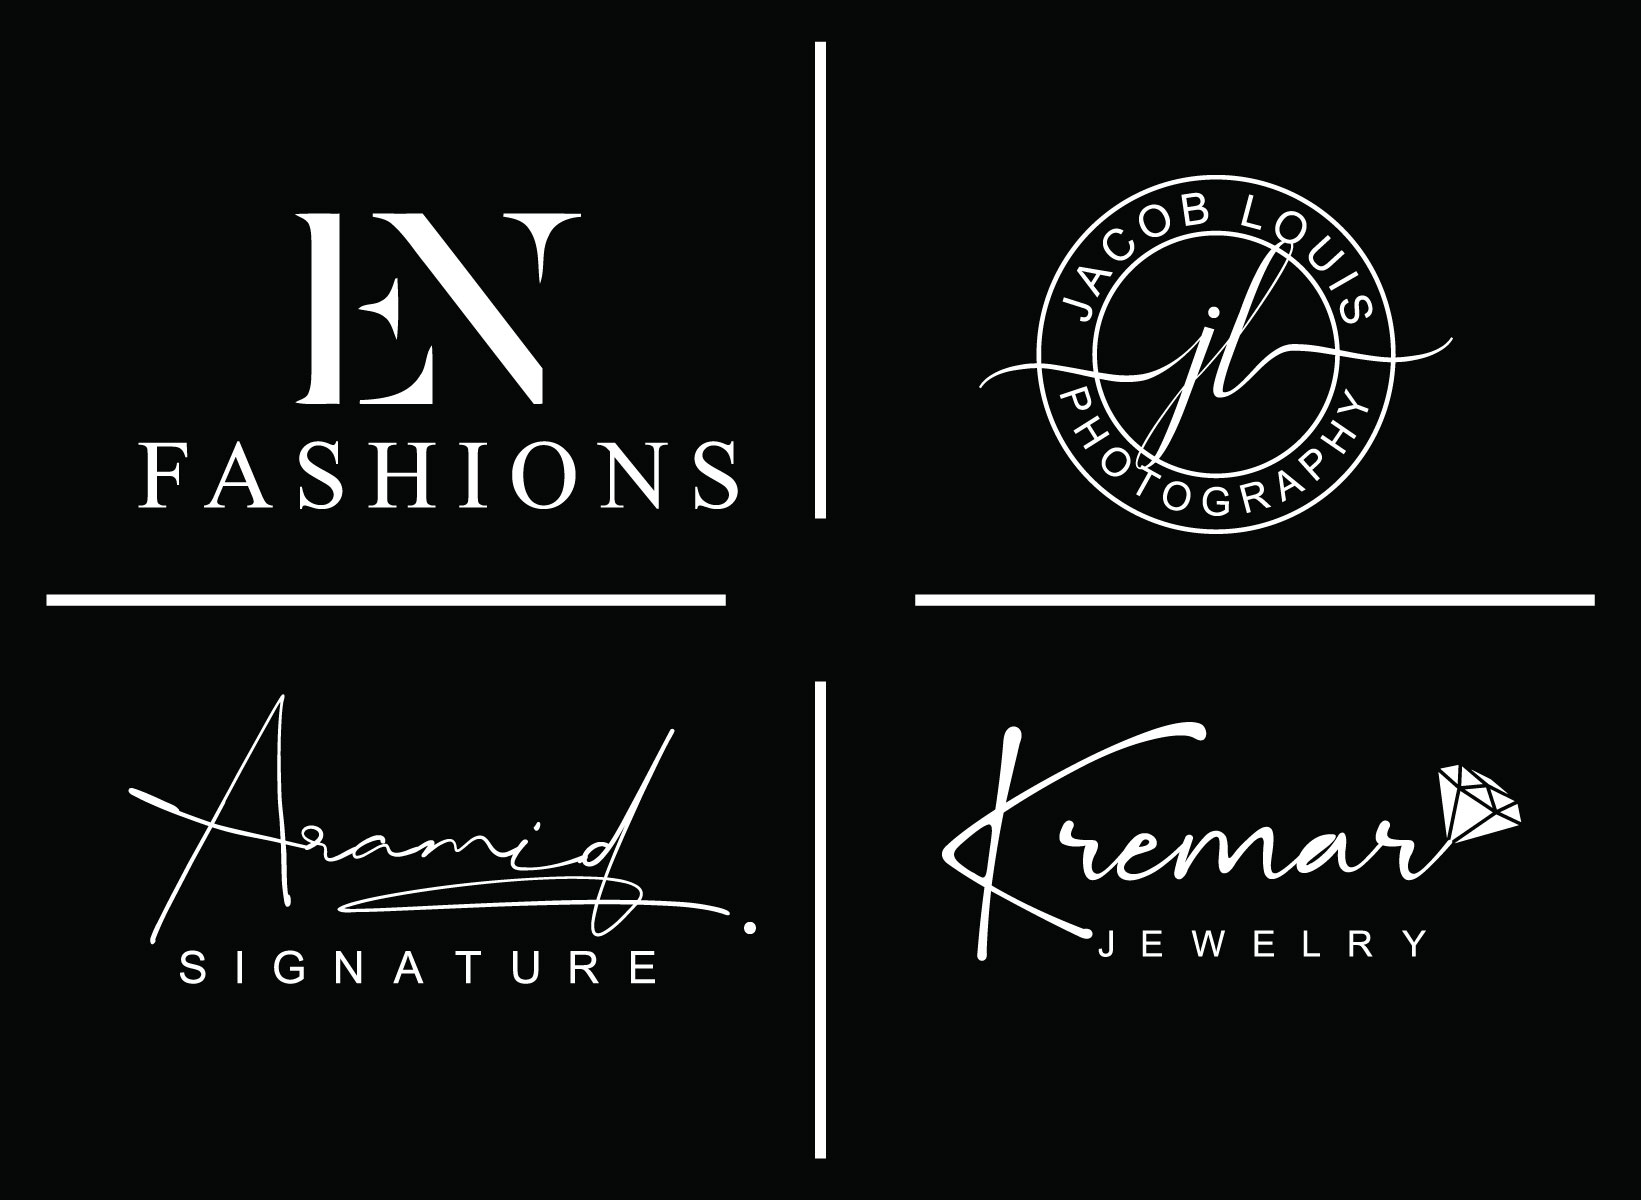 i will Do signature photography fashion Boutique logo design